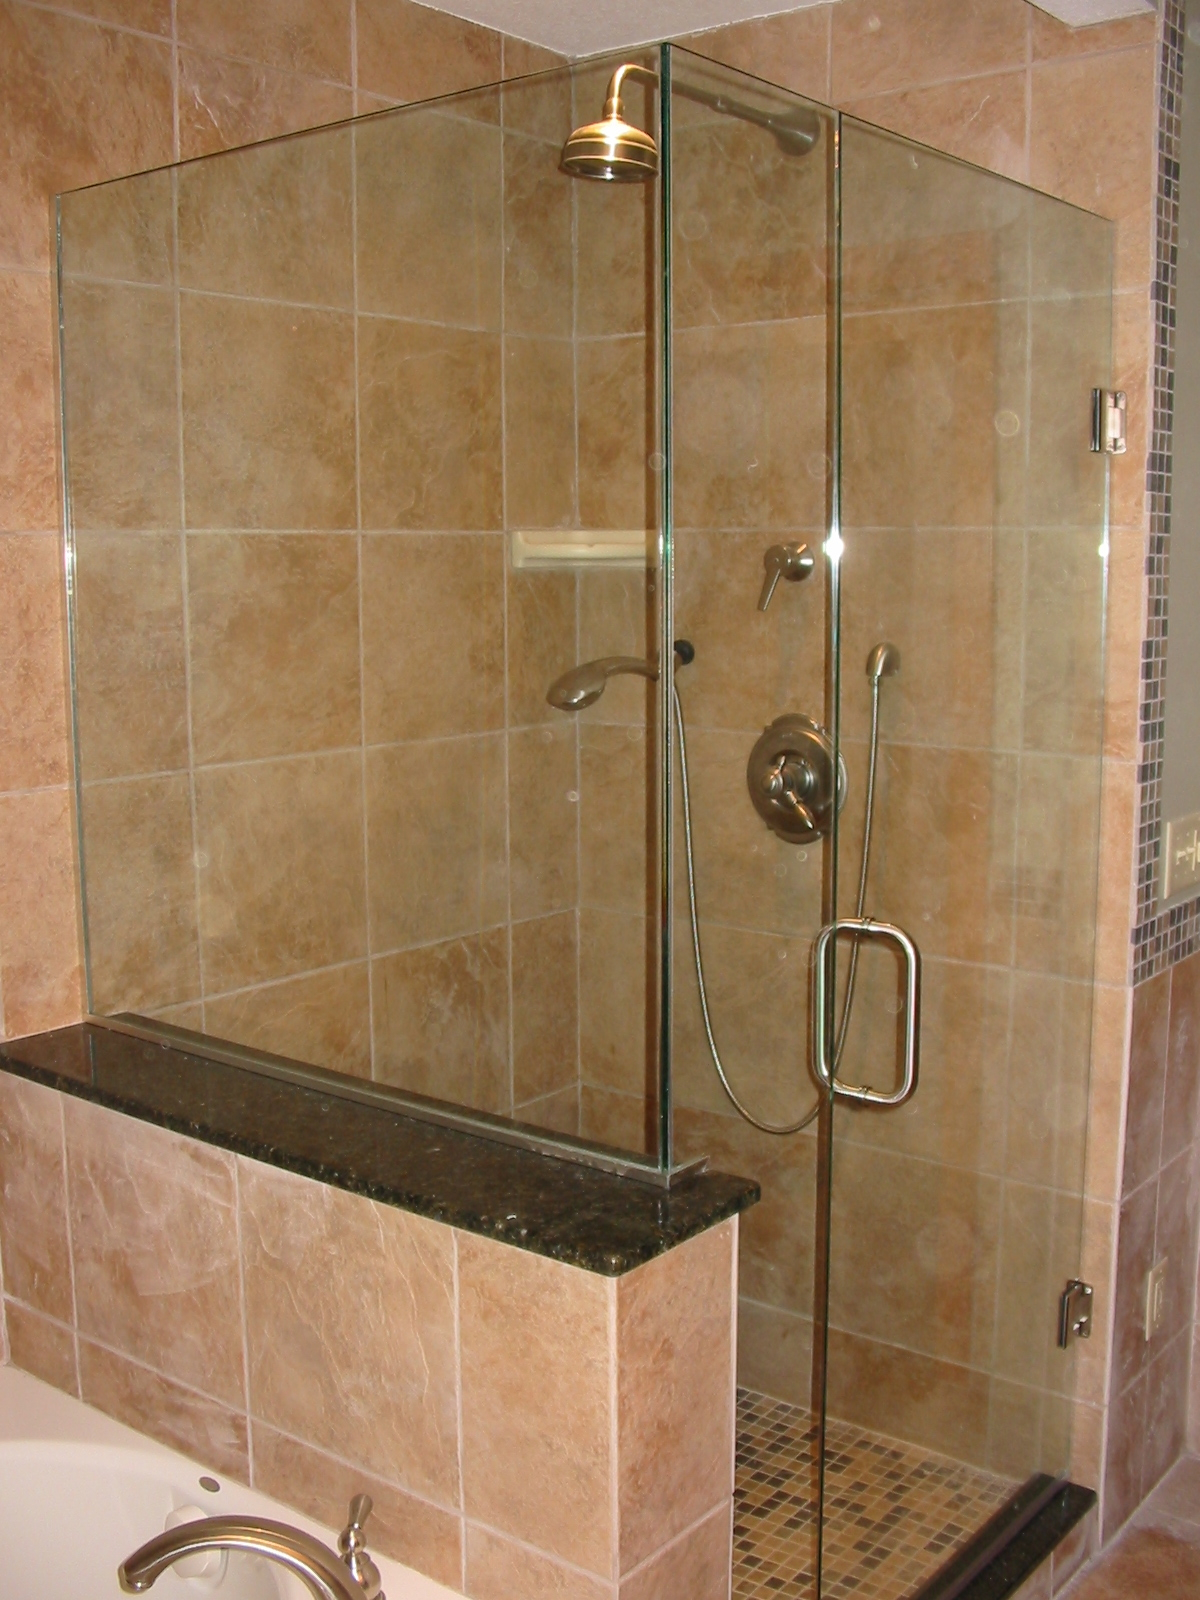 Sliding shower doors and sliding door shower enclosures roman showers - Frameless Shower Doors Bathroom Shower Designs